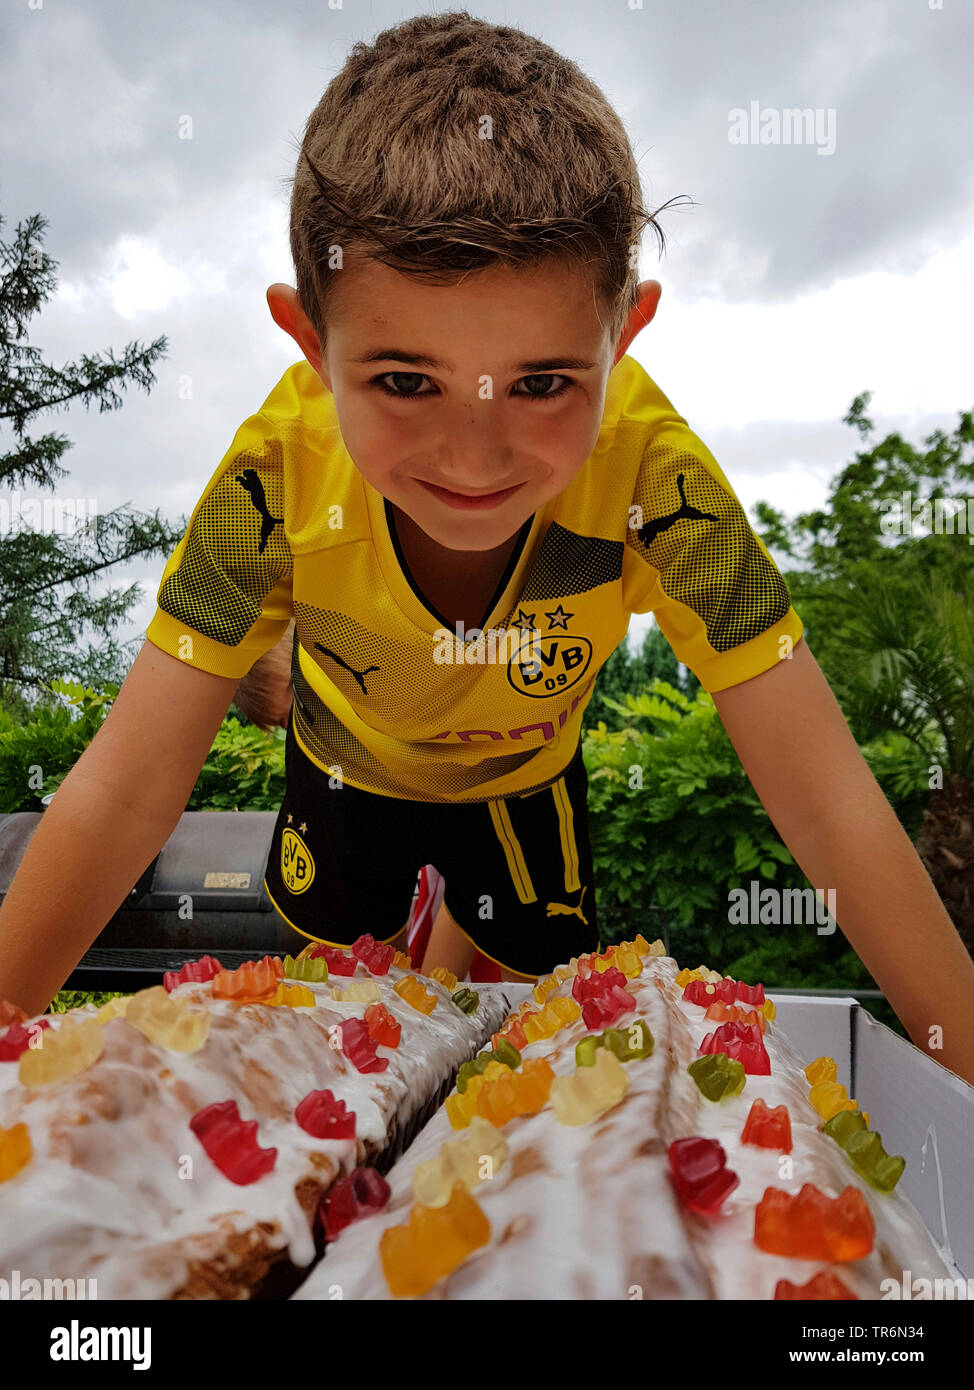 littler boy in BVB tricot with his birthday cake - Stock Image